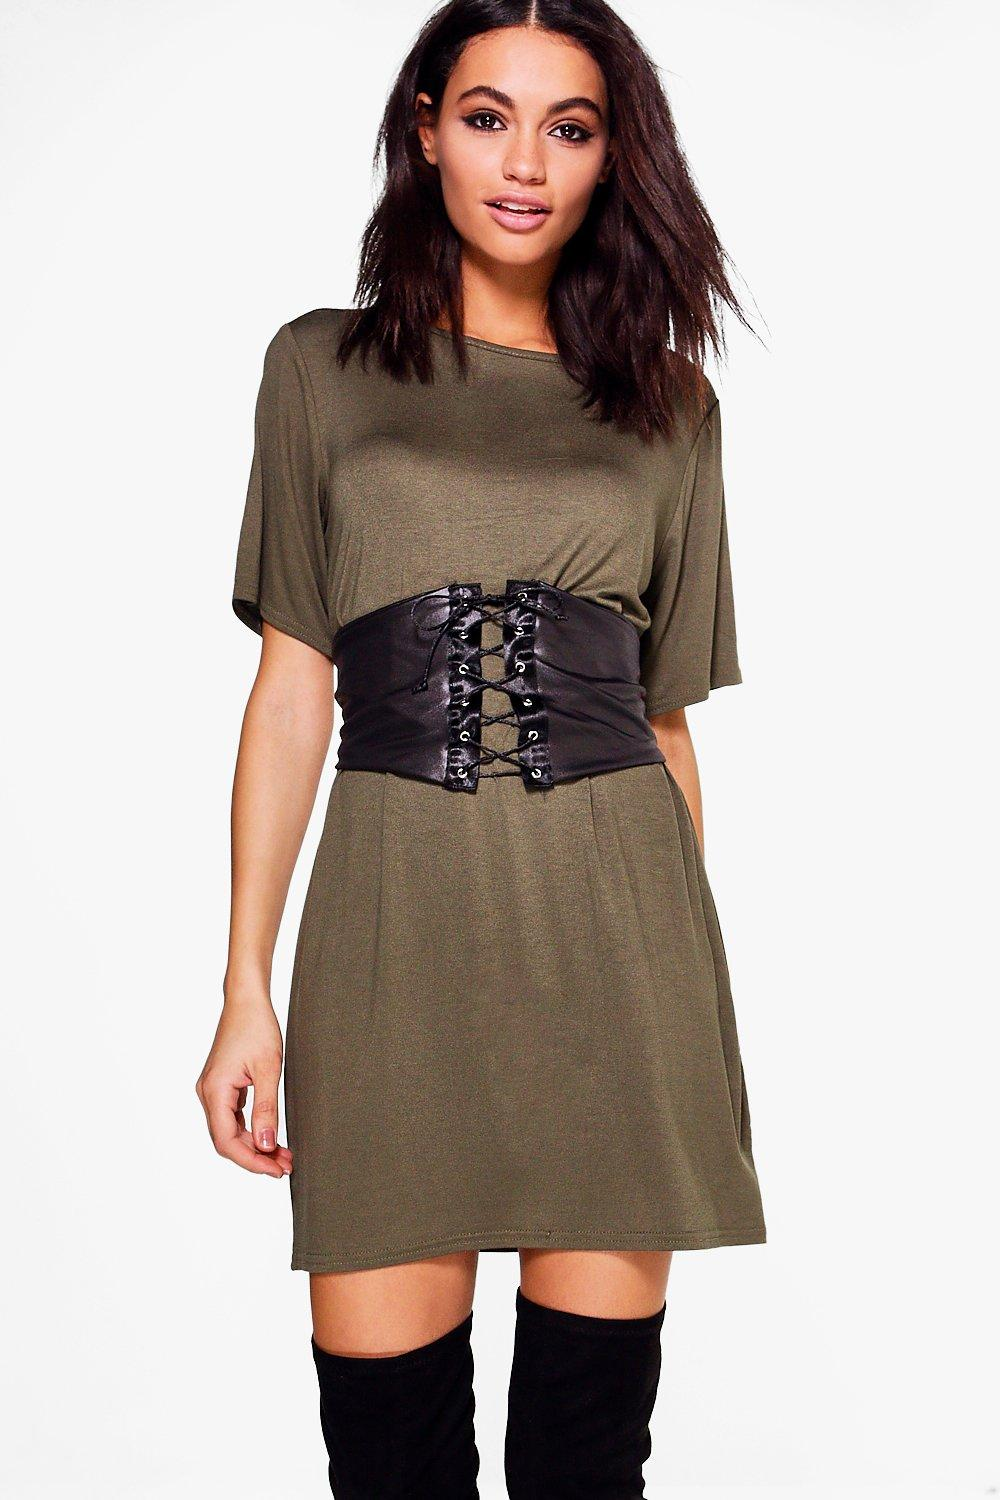 Popular Details About Boohoo Womens Paige Sleeveless Belted Midi Shirt Dress